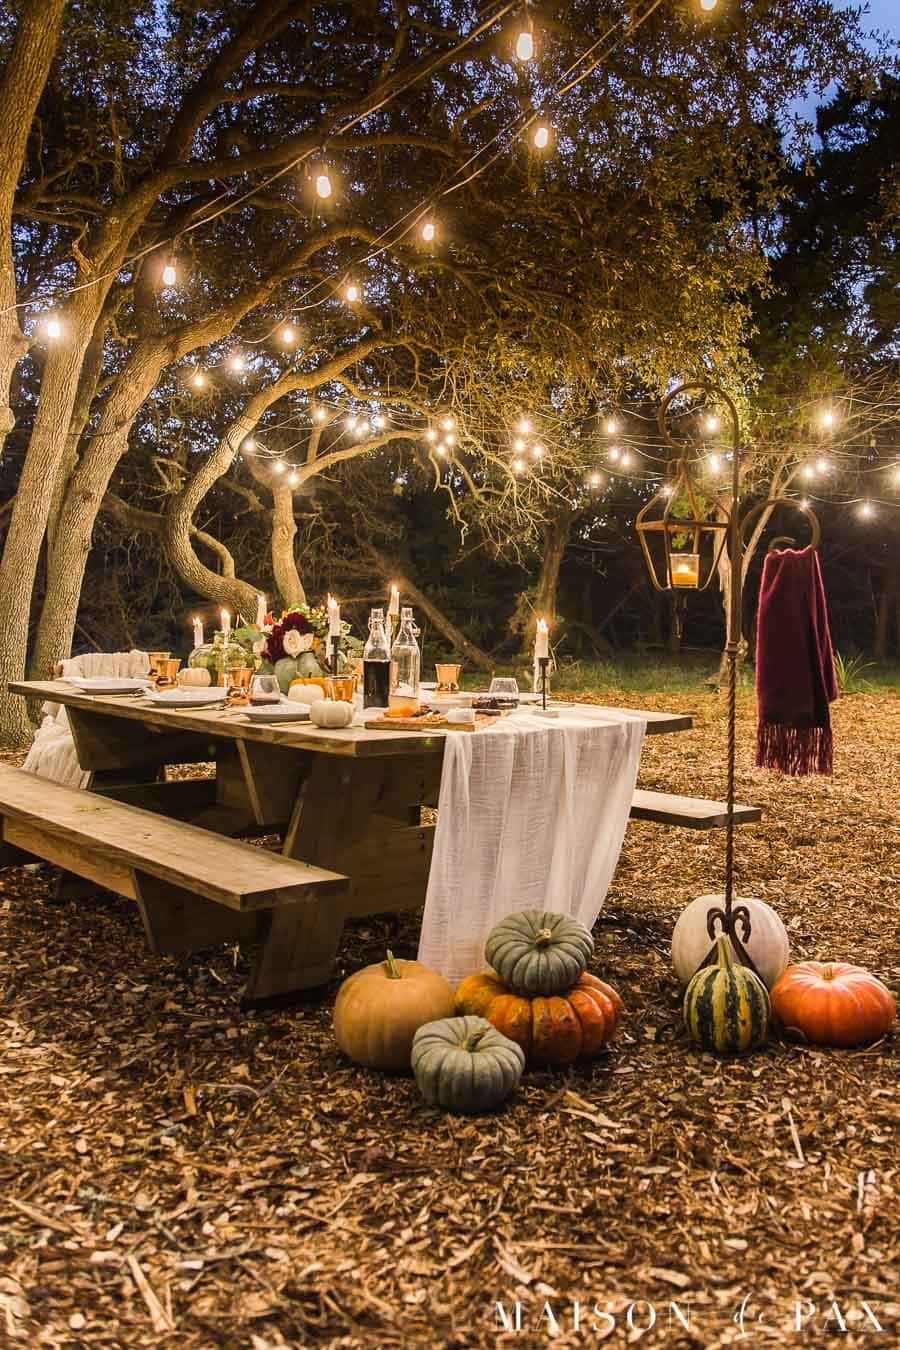 outdoor friendsgiving nighttime table with string lights | Maison de Pax